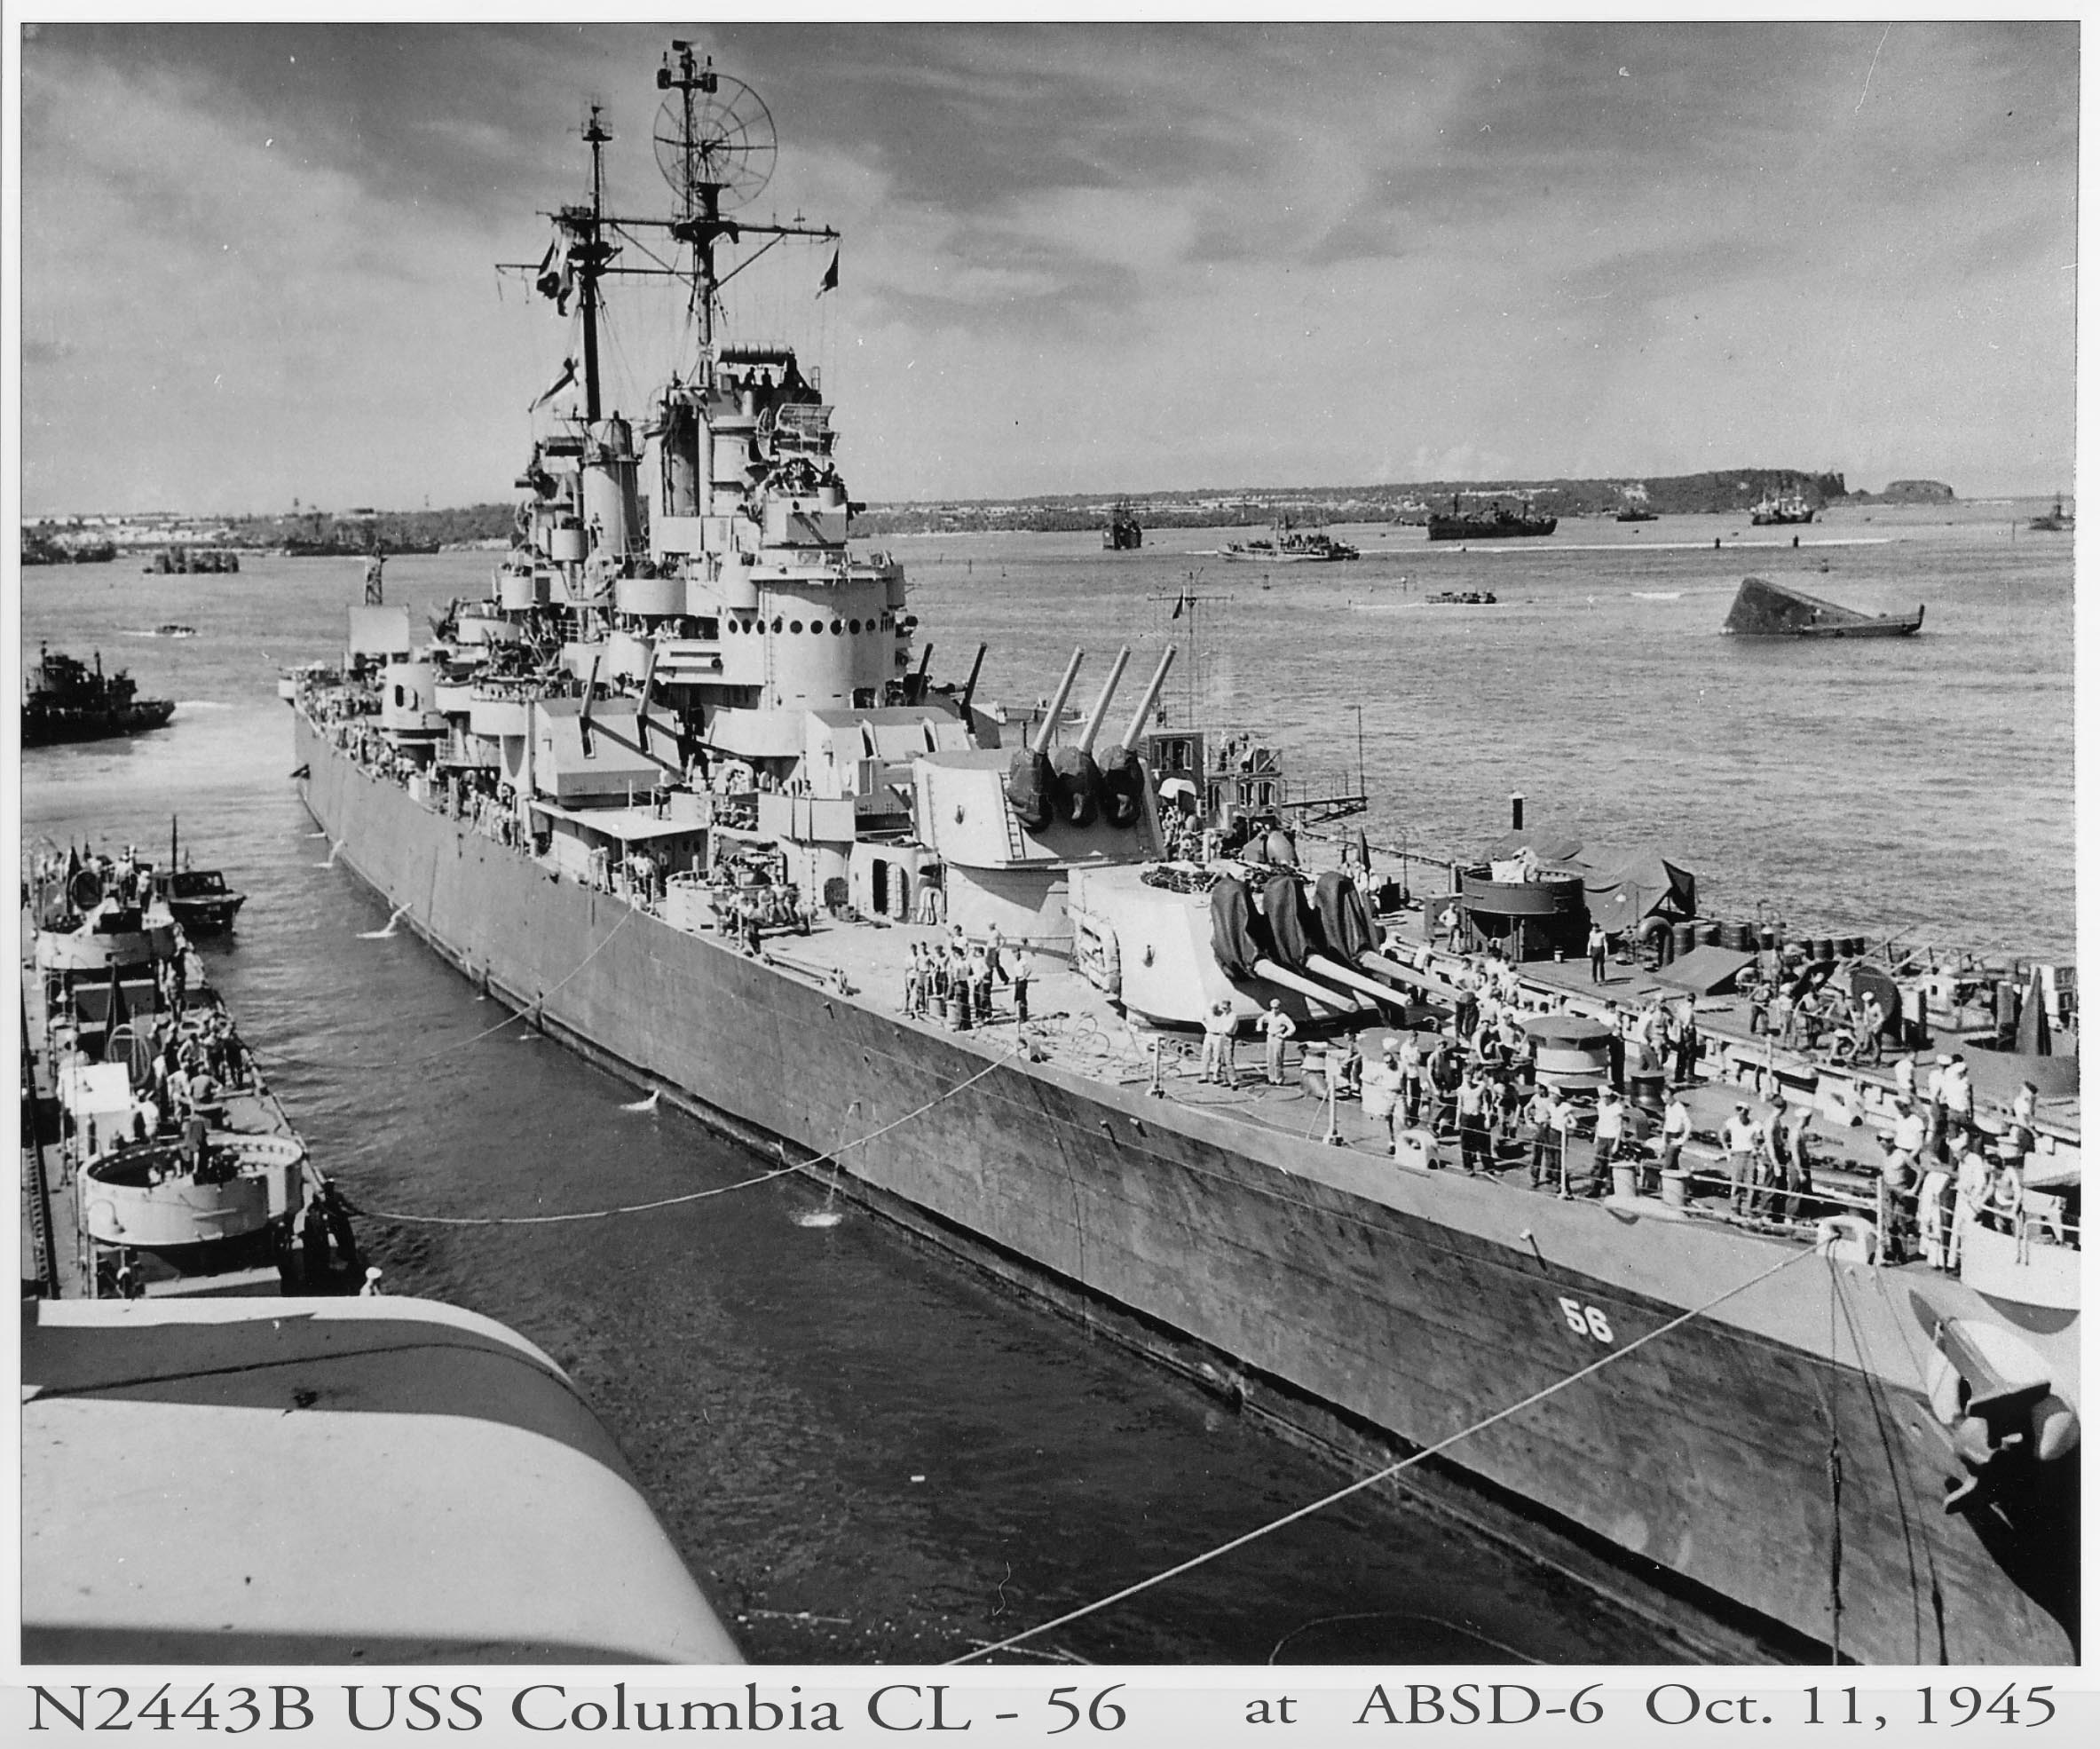 Columbia entering ABSD-6 starboard side view